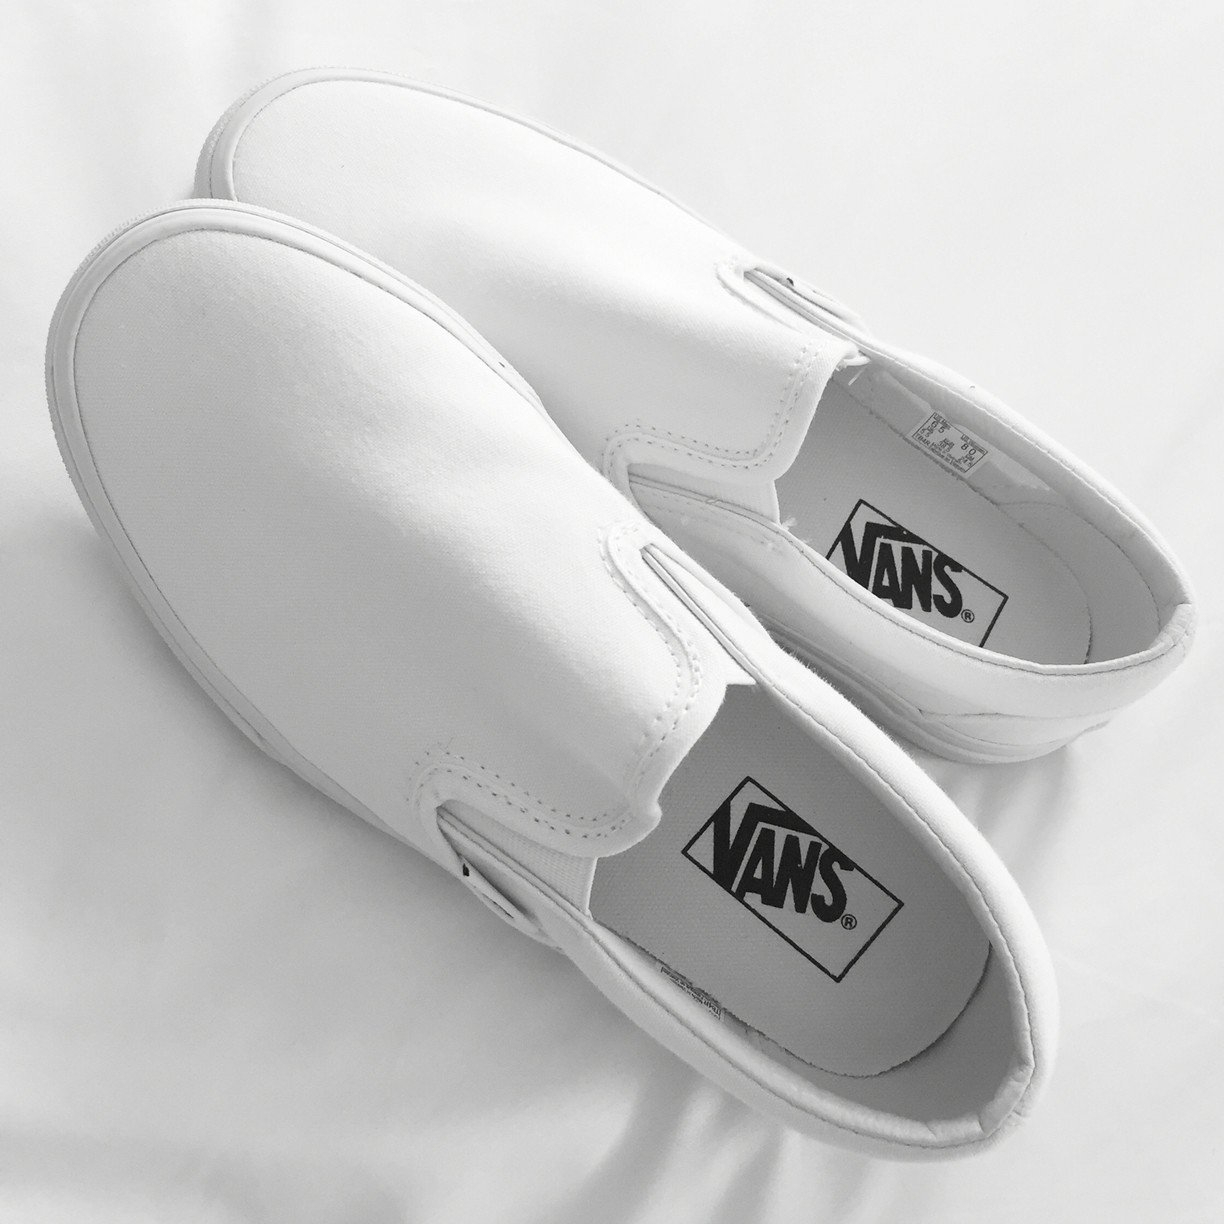 Image of Vans Classic Casual Canvas Flats Shoes Sneakers Sport Shoes